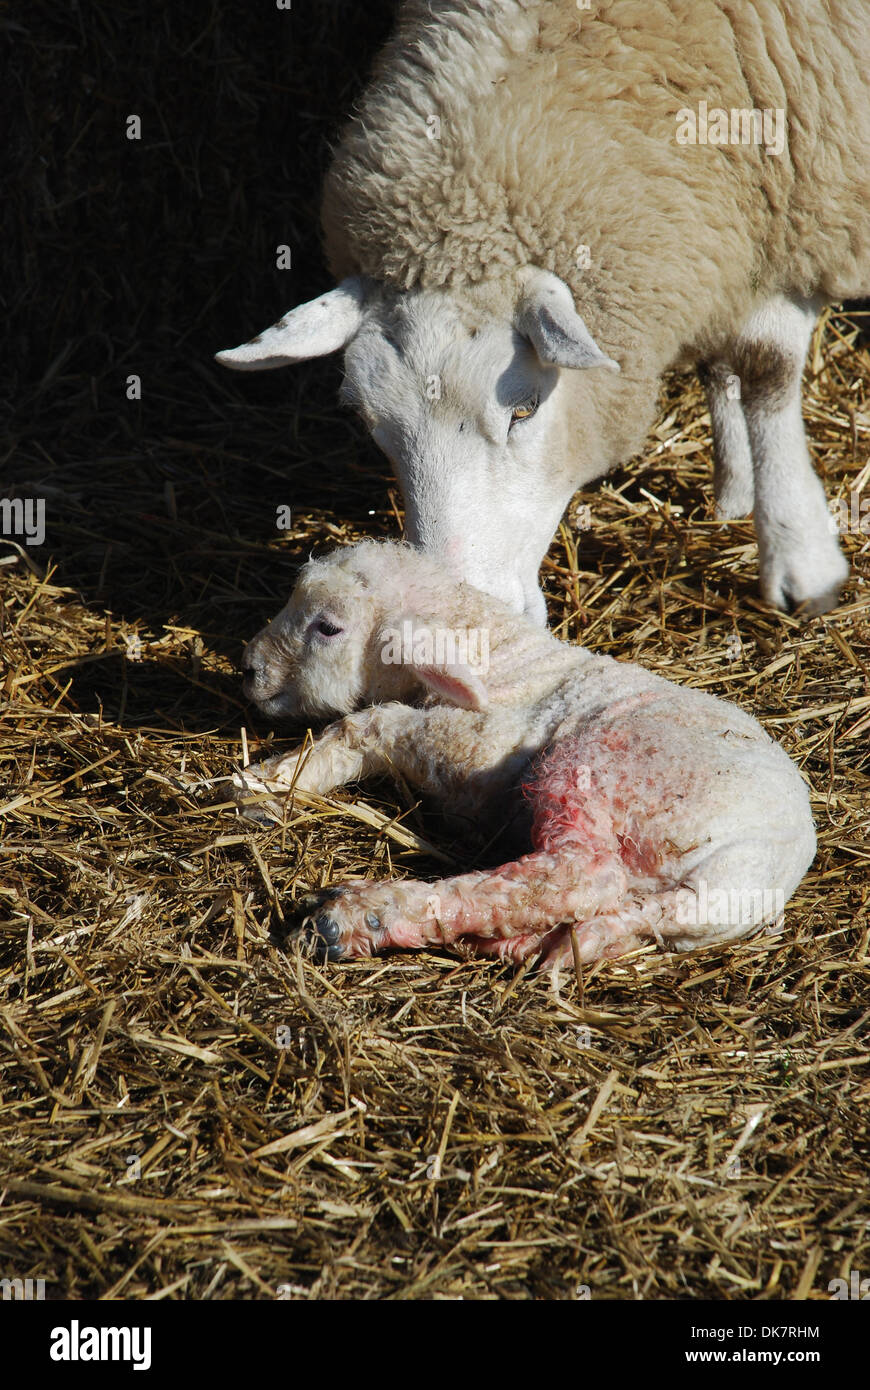 Newly born lamb with mother - Stock Image